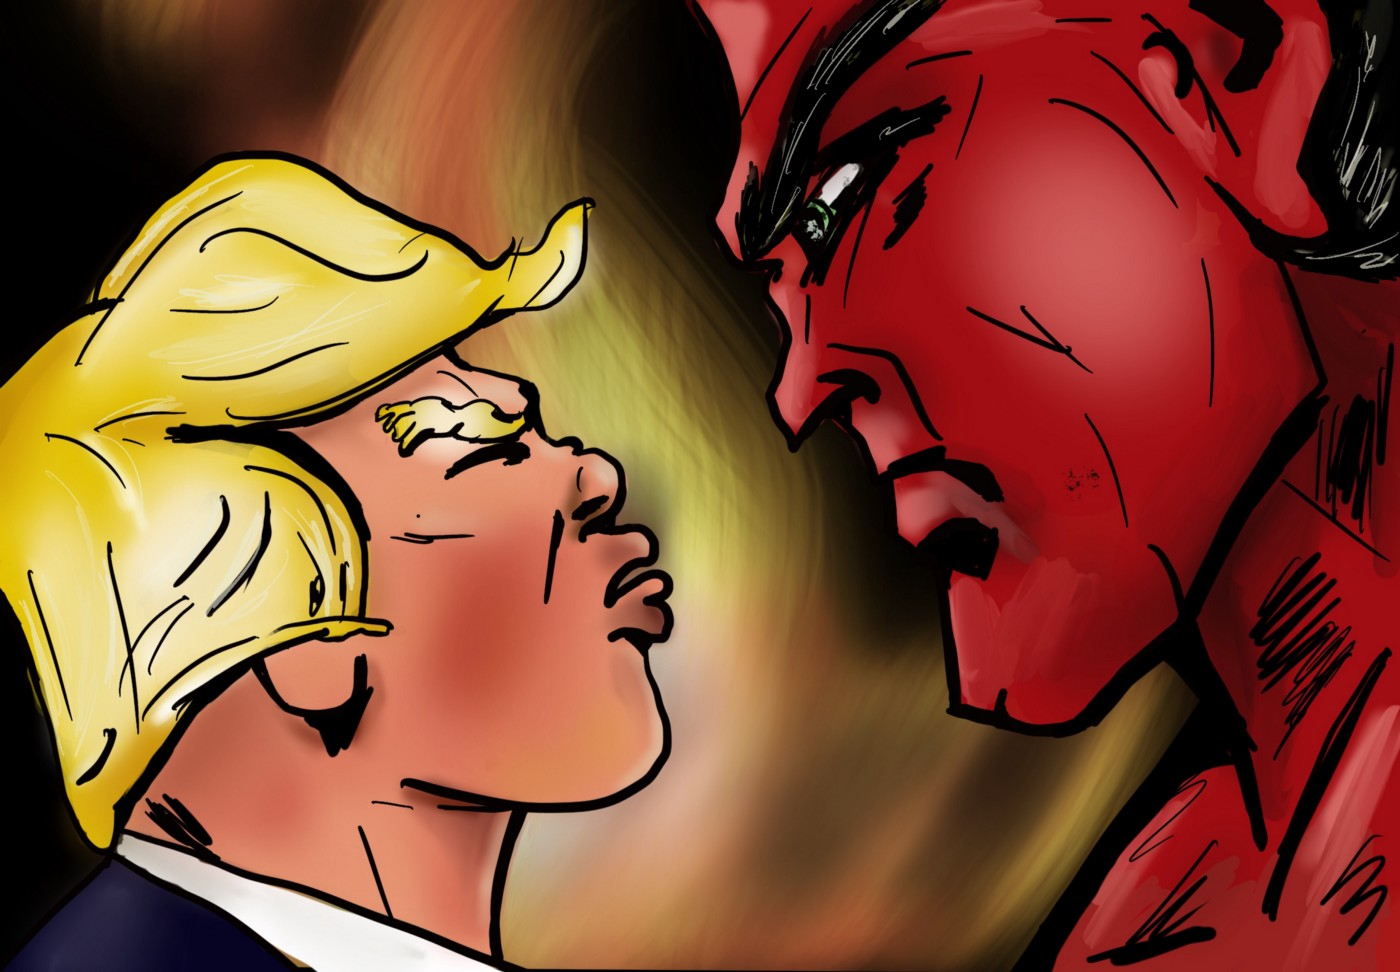 Donald Trump squaring off against the Devil in a comedic battle in Hell.